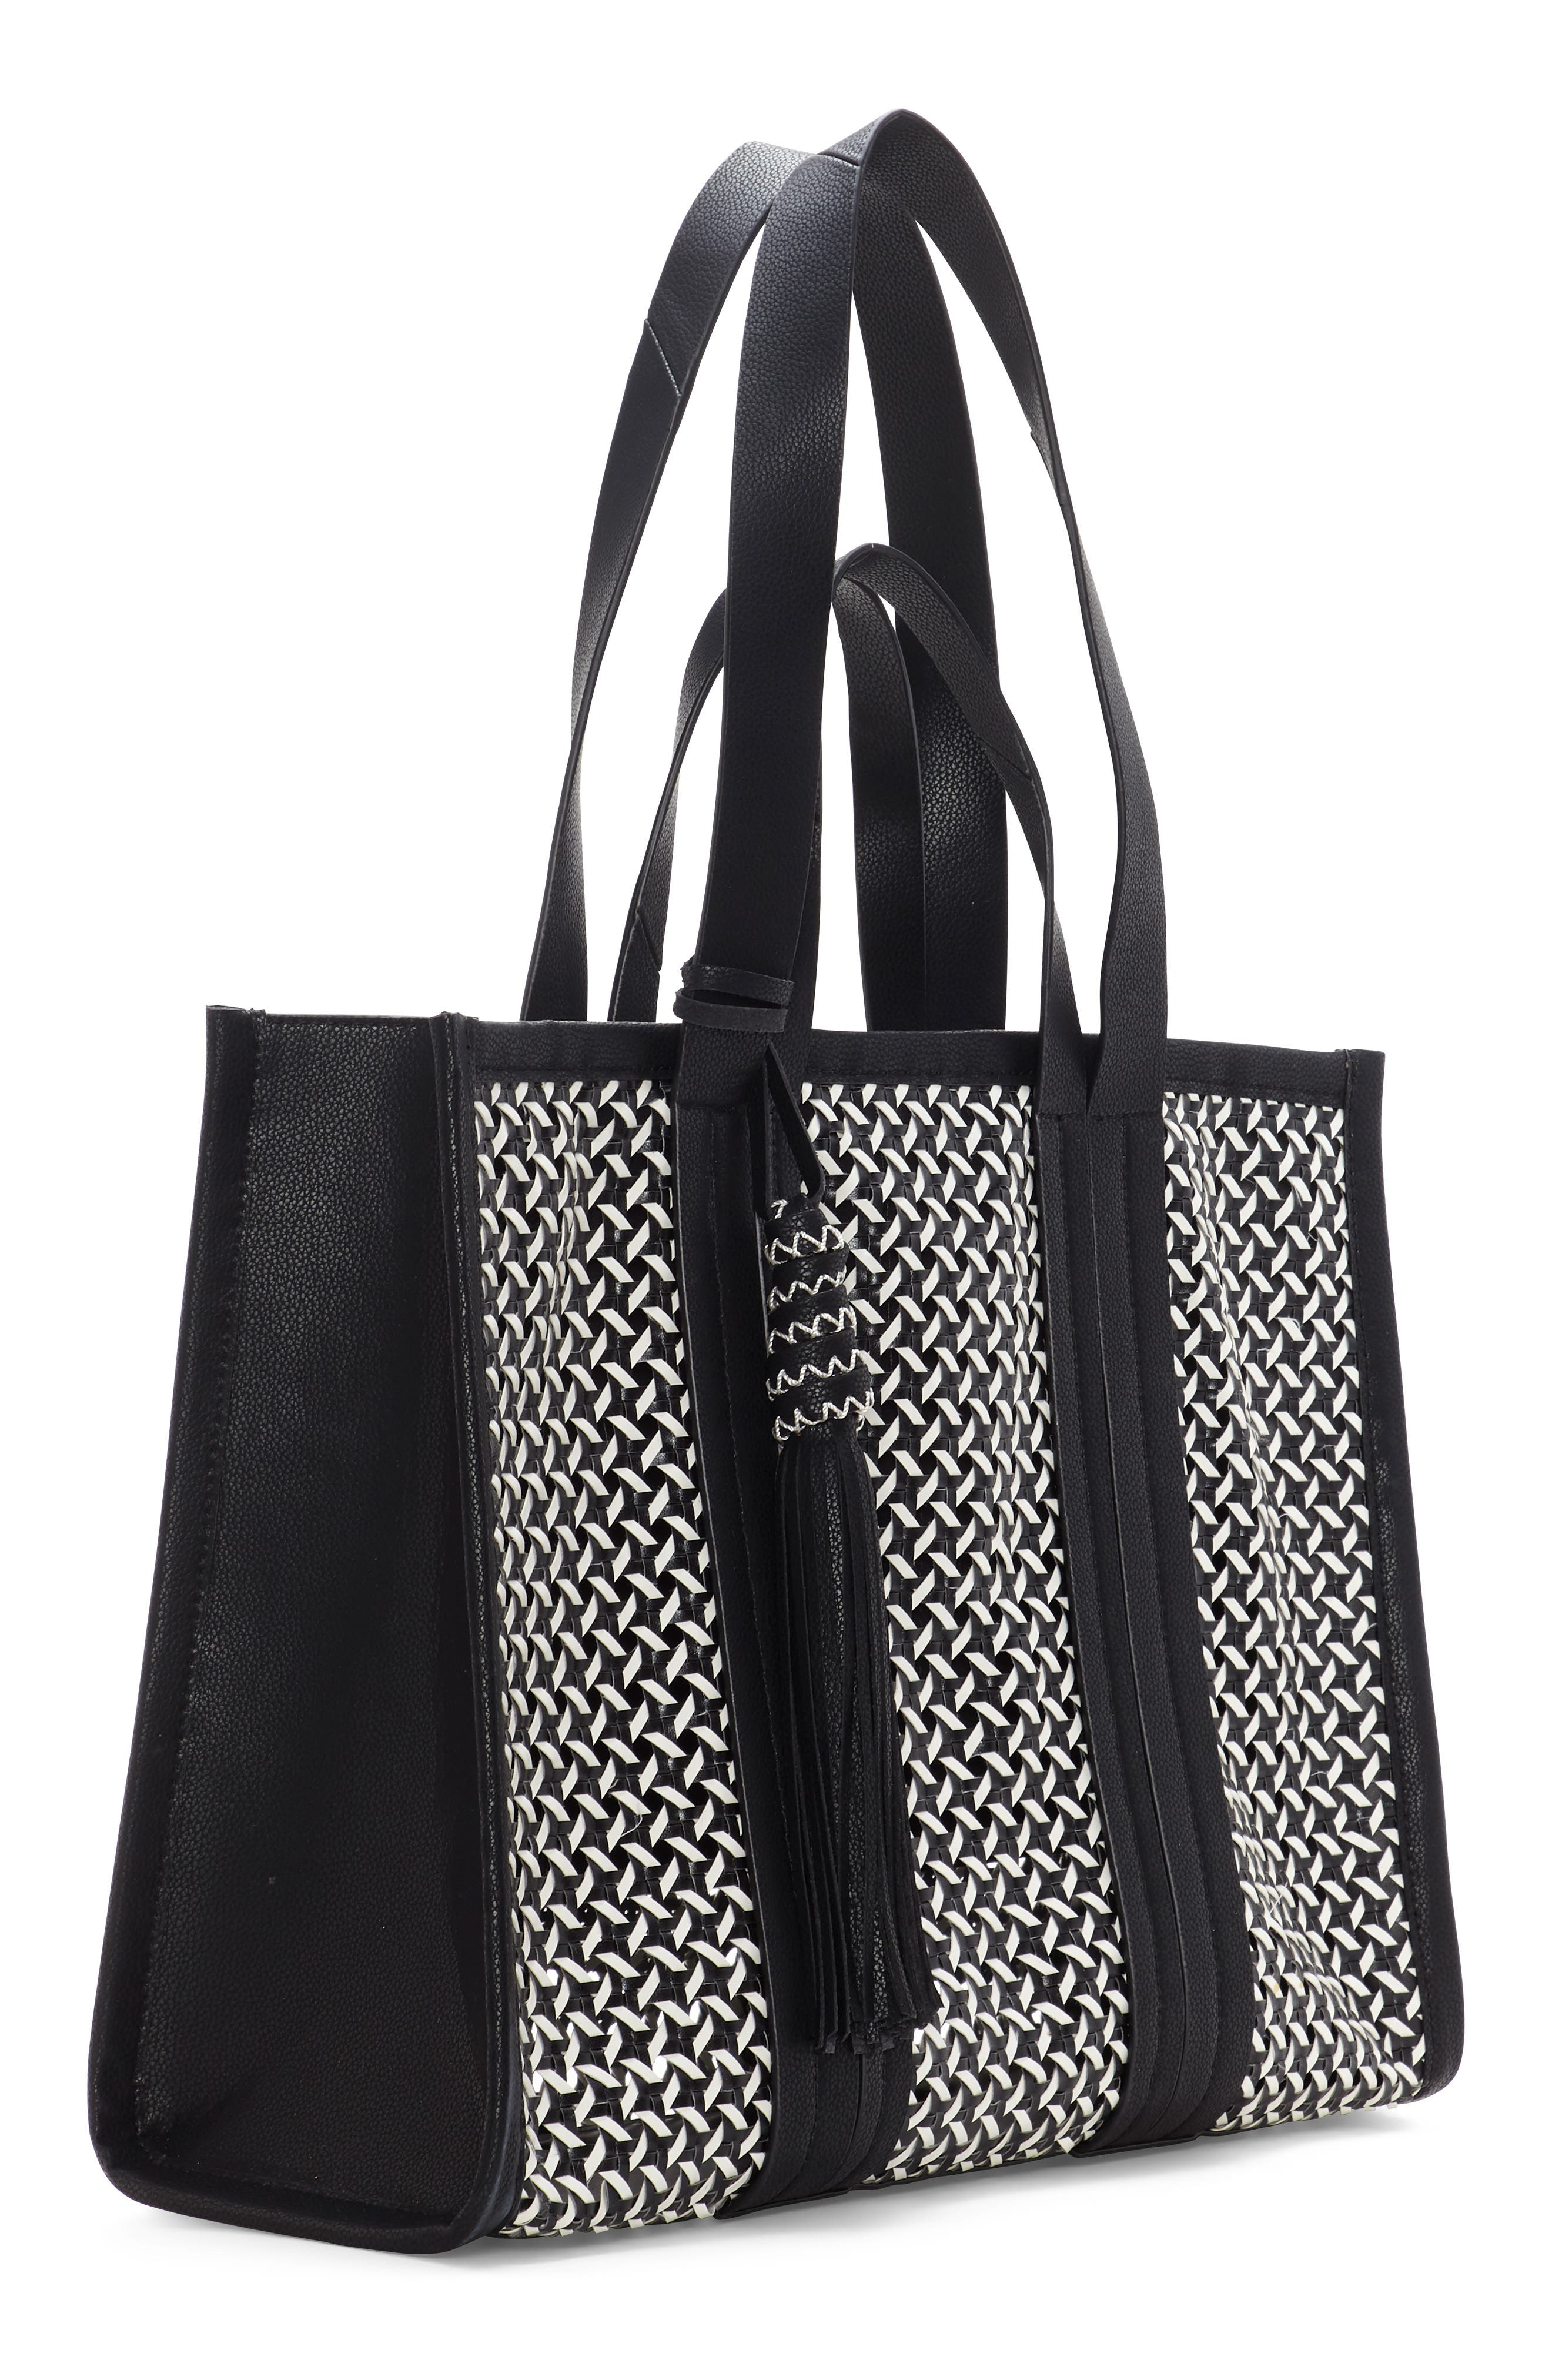 VINCE CAMUTO, Indra Woven Rattan & Leather Tote, Alternate thumbnail 4, color, 001